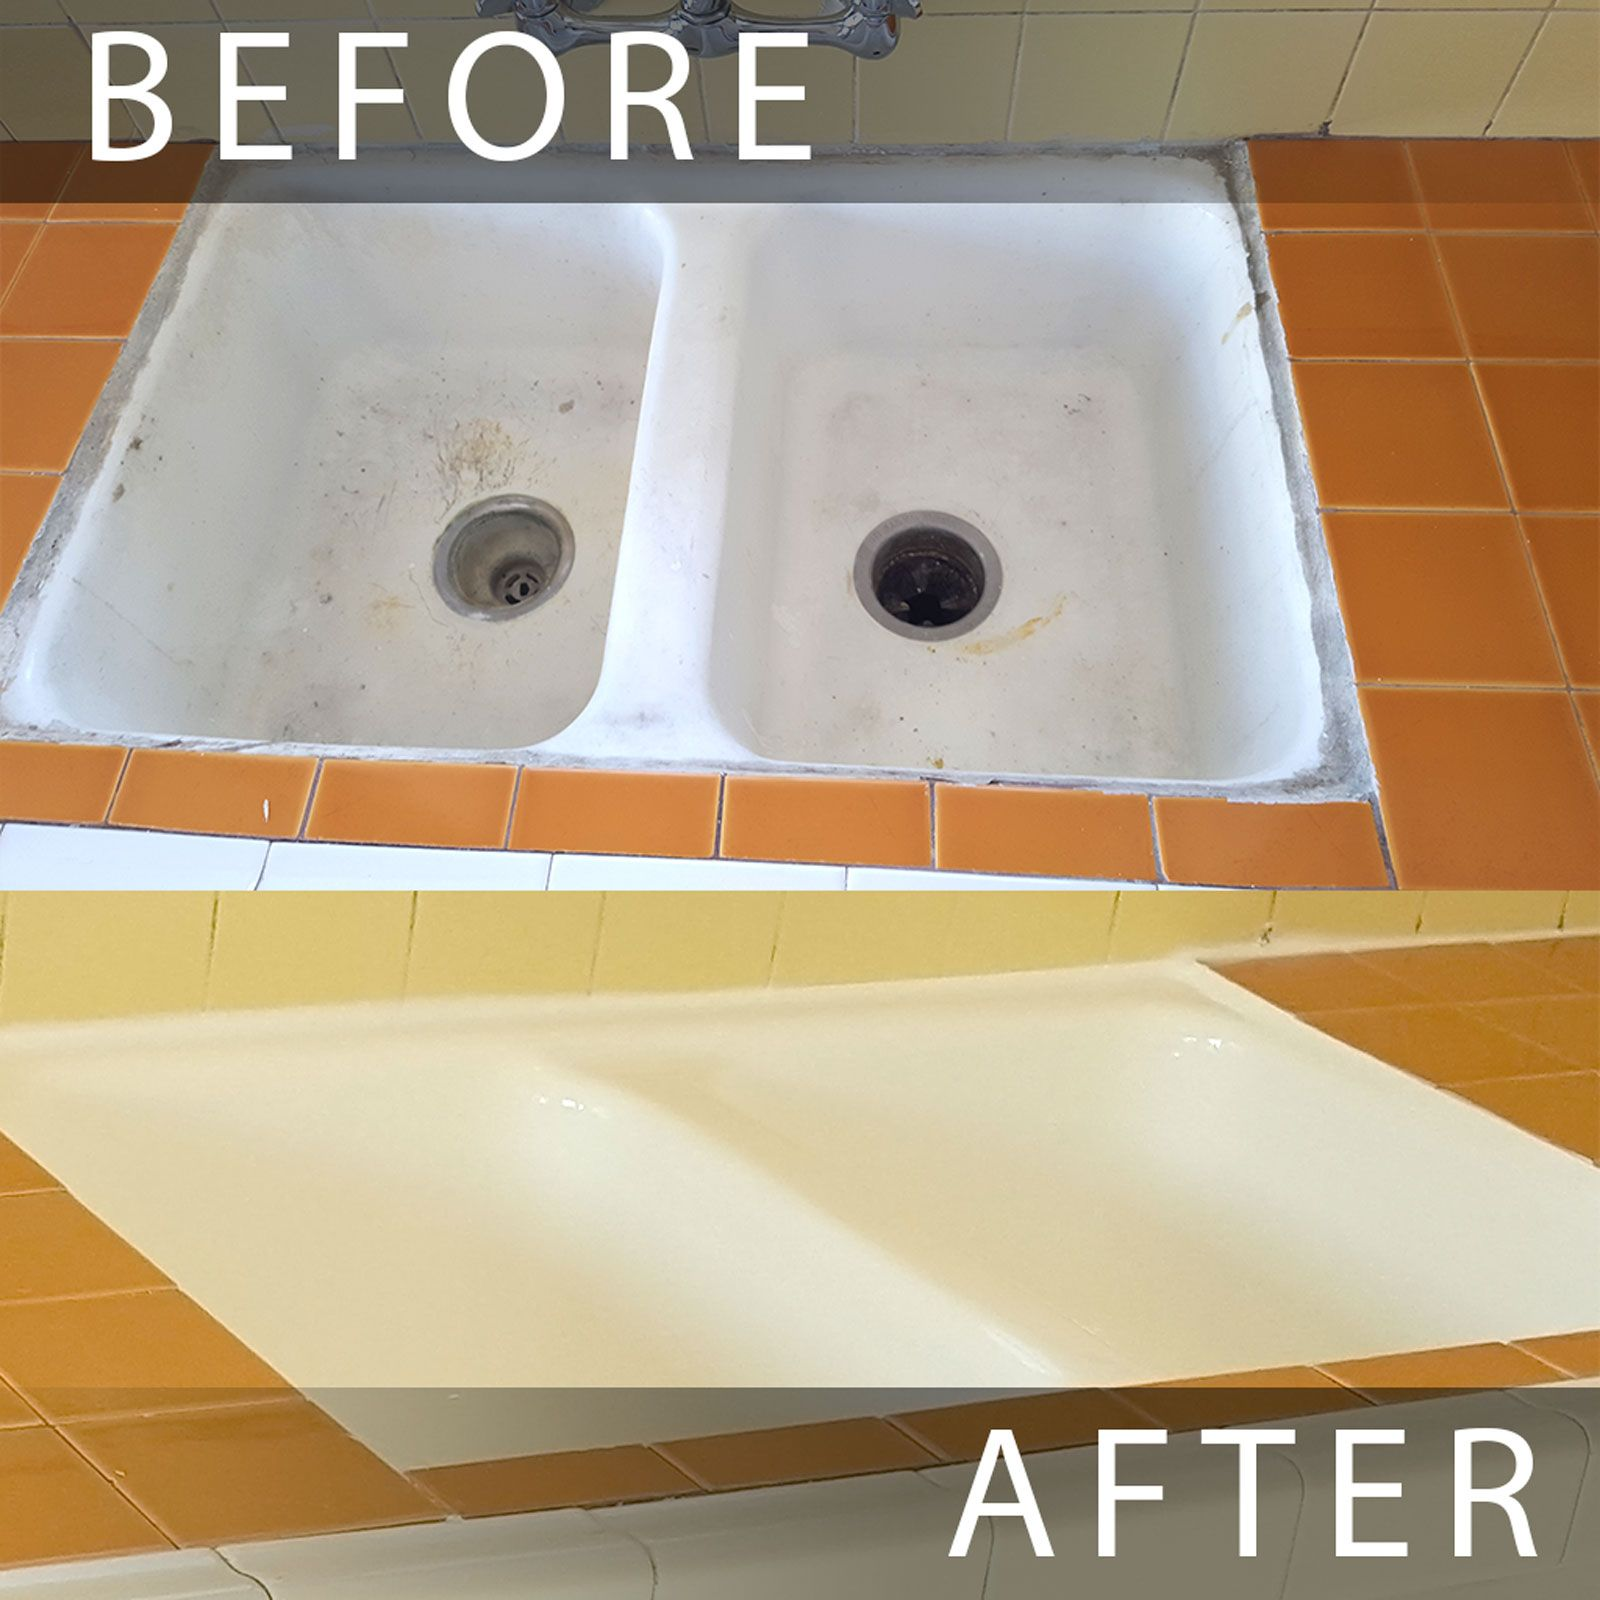 Kitchen sink reglazing Los Angeles. Before and after sink reglazed ...